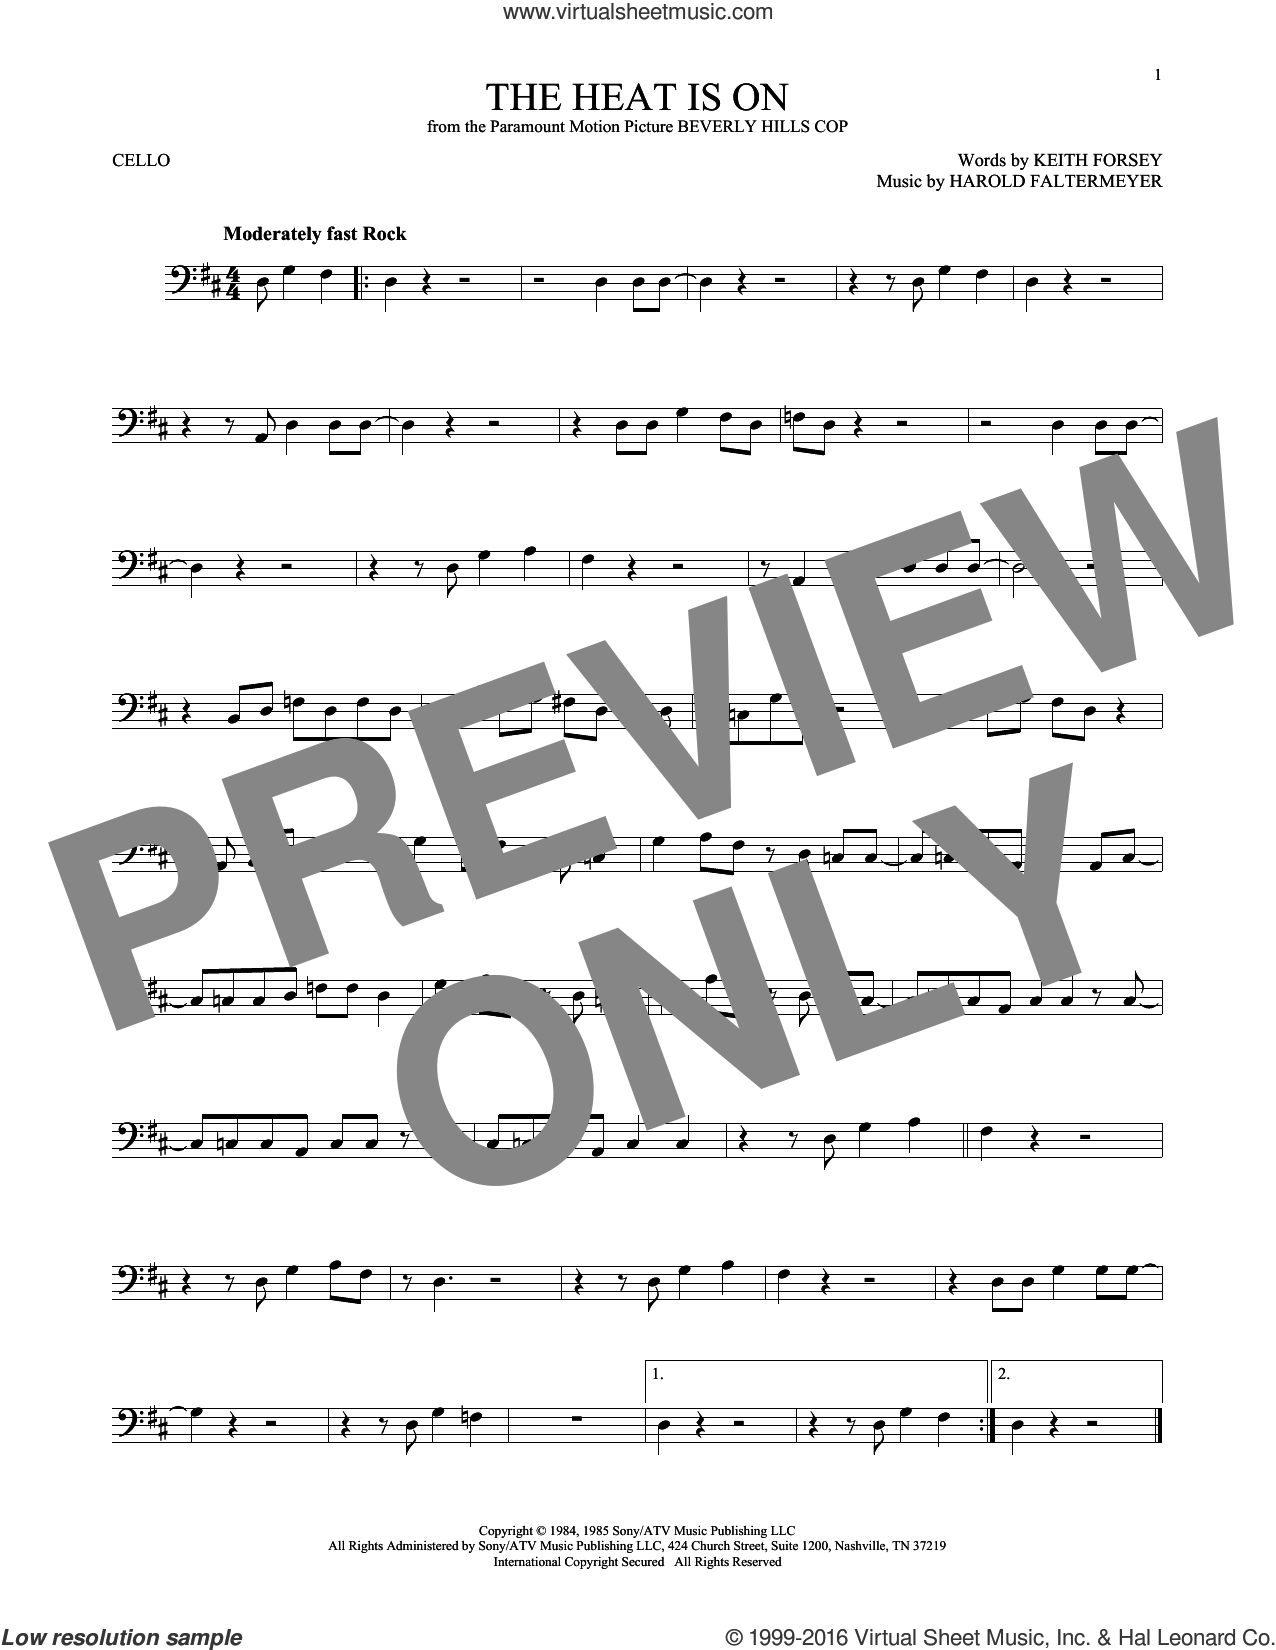 The Heat Is On sheet music for cello solo by Glenn Frey, Harold Faltermeyer and Keith Forsey, intermediate skill level